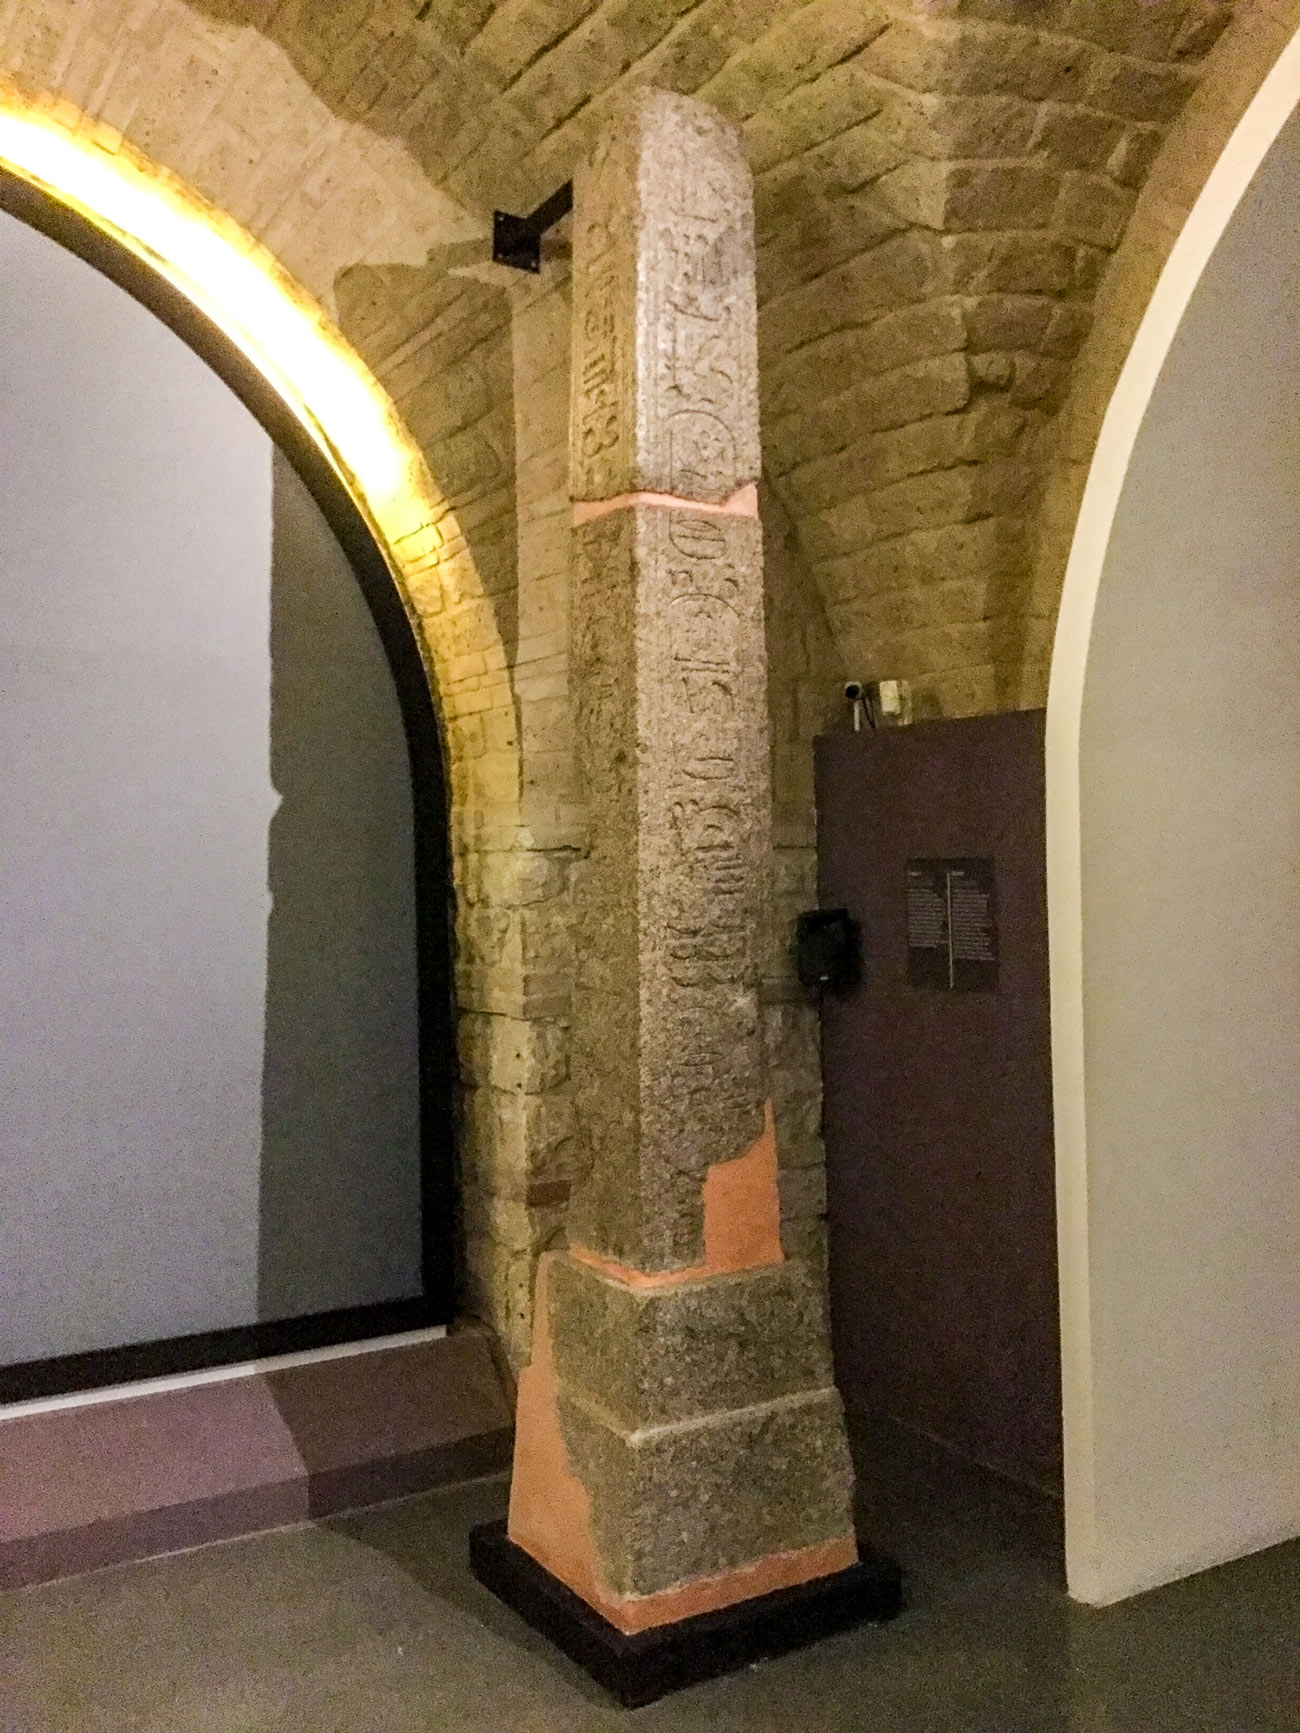 The same stone obelisk shown above but in a darker room, with orange repair patches and a metal arm connected to a stone wall supporting it.